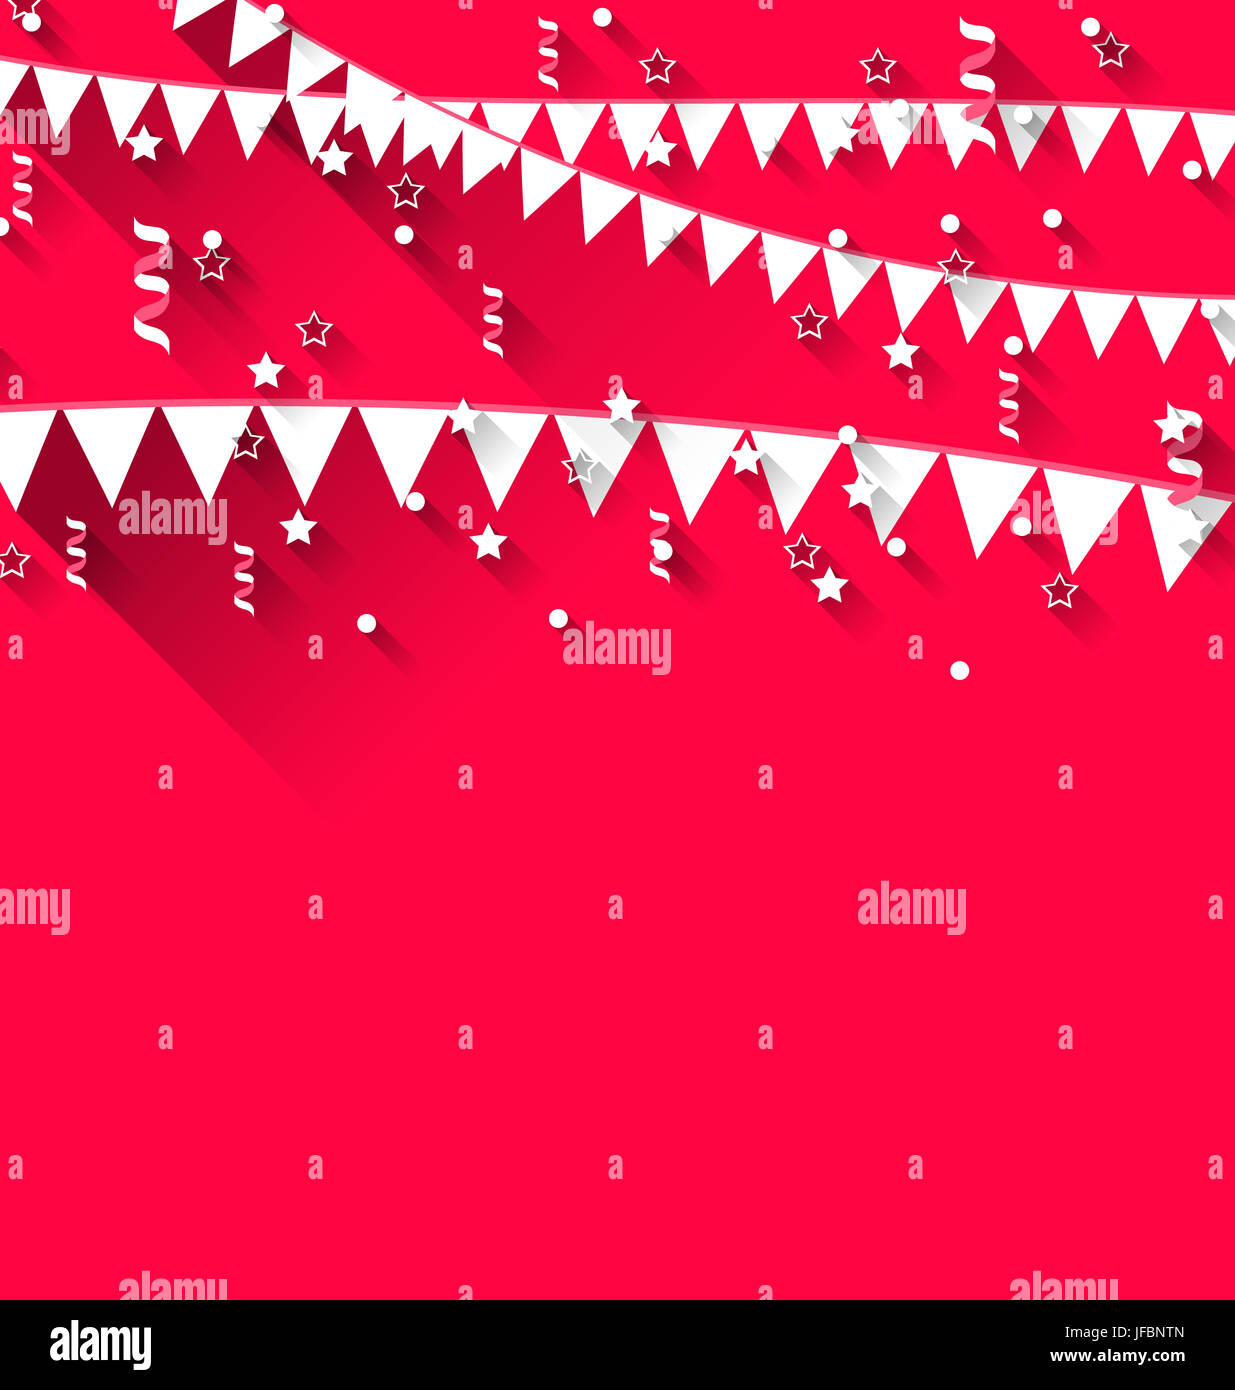 Illustration Cute Background With Hanging Pennants For Carnival